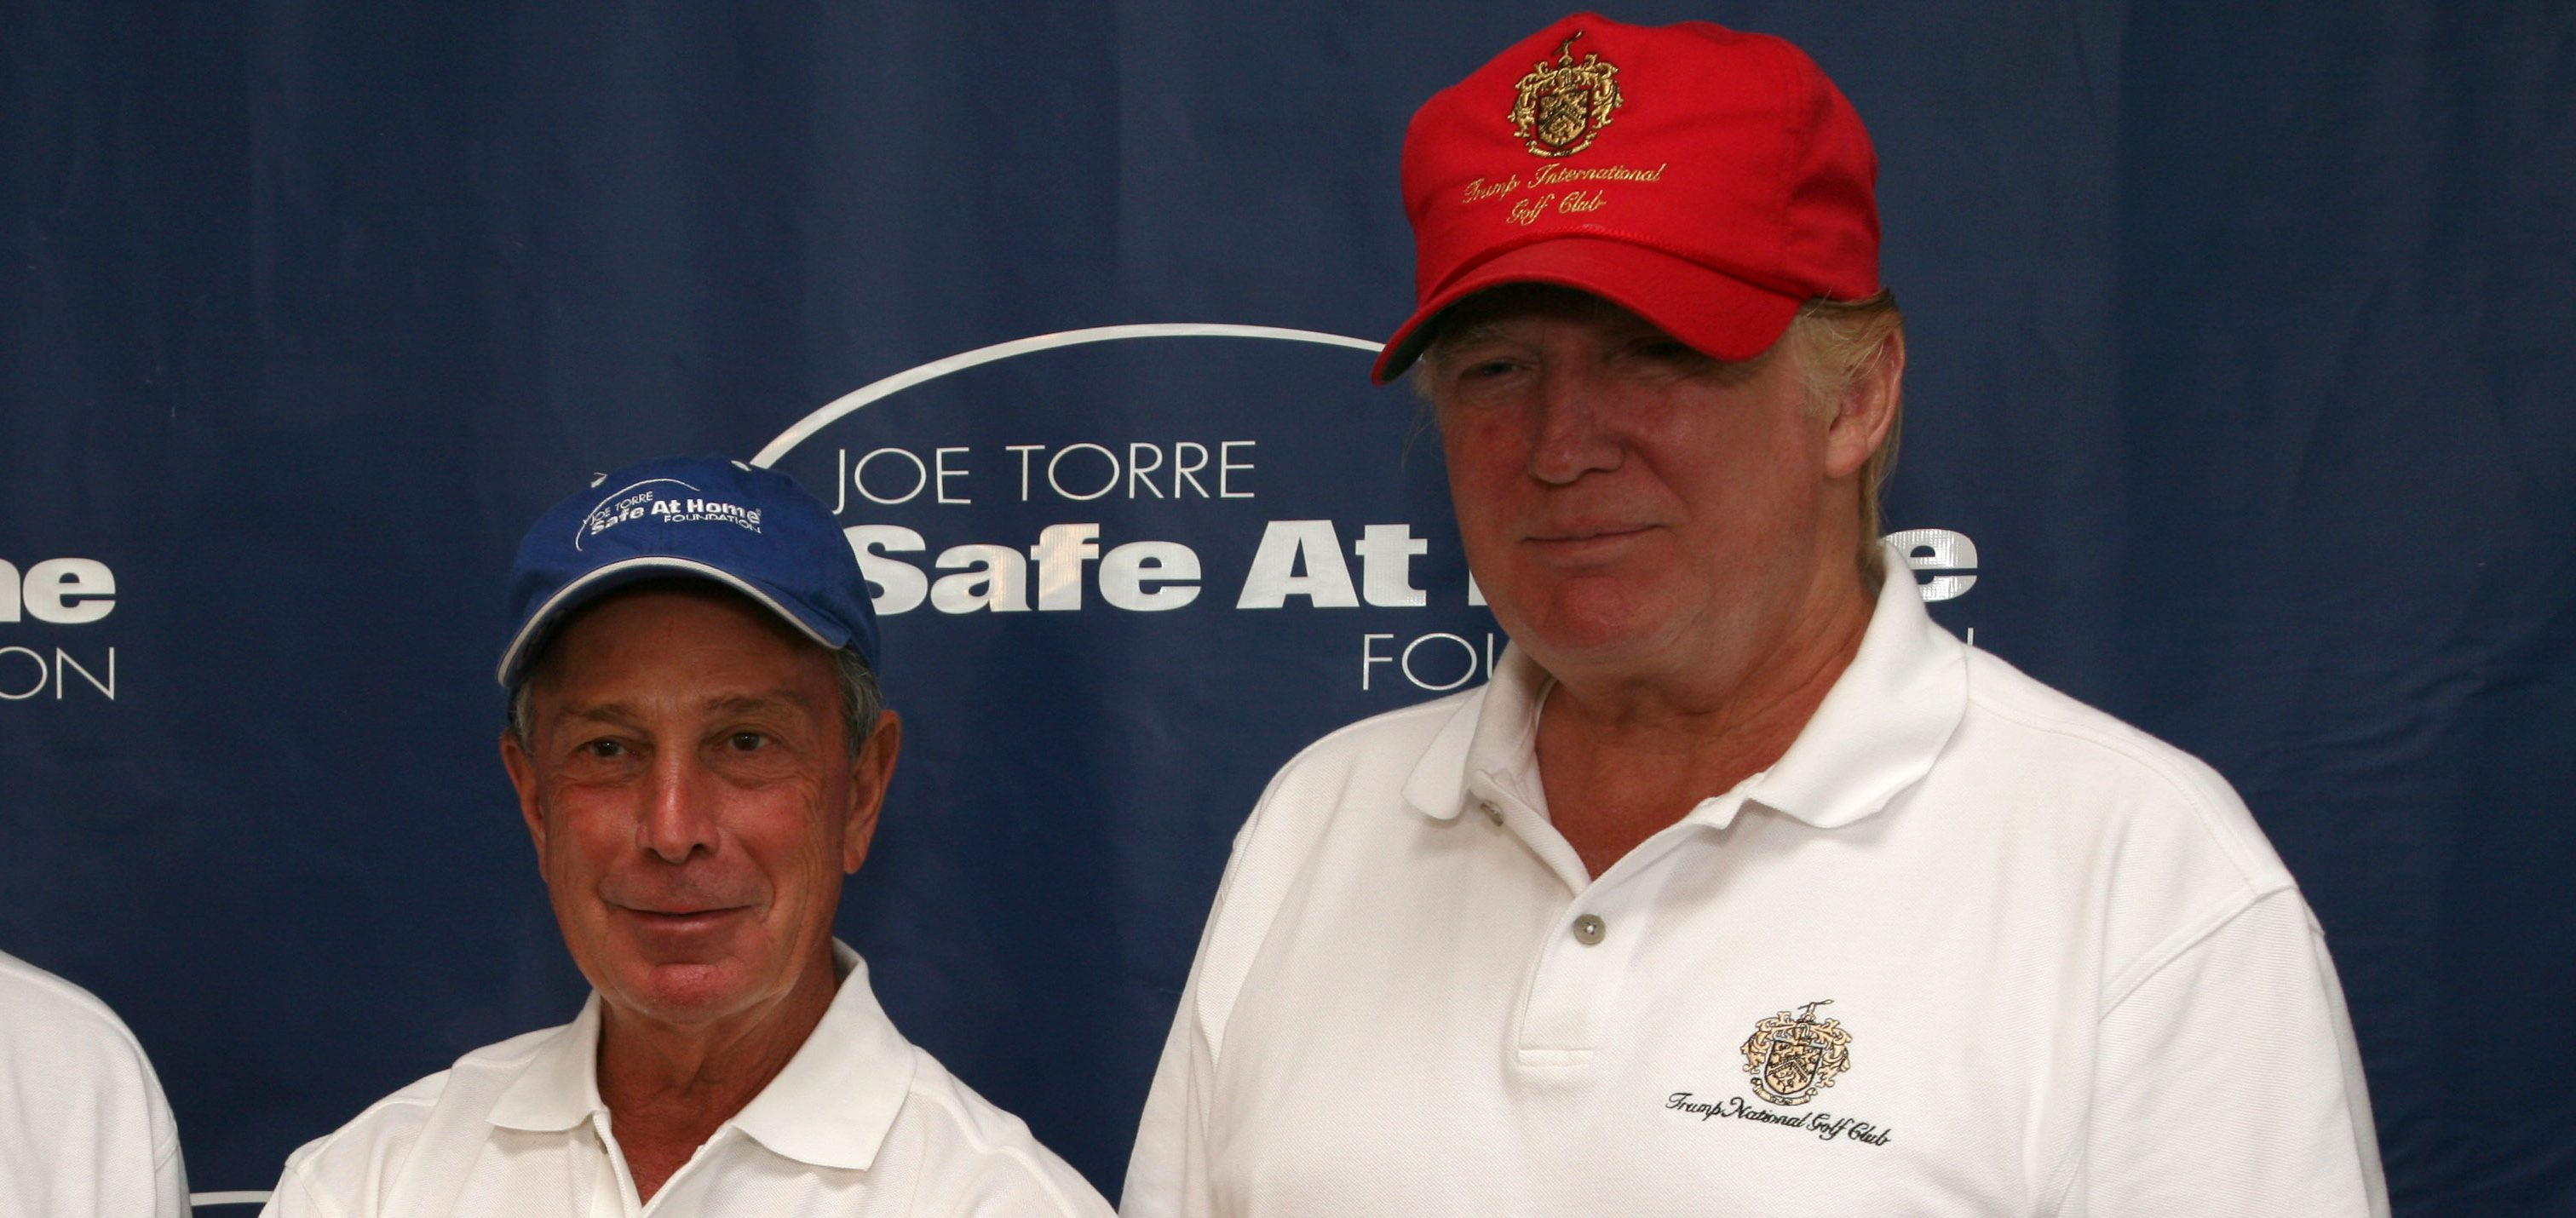 BRIARCLIFF MANOR, NY - JULY 14:  Joe Torre, Mayor Michael R. Bloomberg and Donald Trump attend the 2008 Joe Torre Safe at Home Foundation Golf Classic at Trump National Golf Club on July 14, 2008 in Briarcliff Manor, New York.  (Photo by Rick Odell/Getty Images)